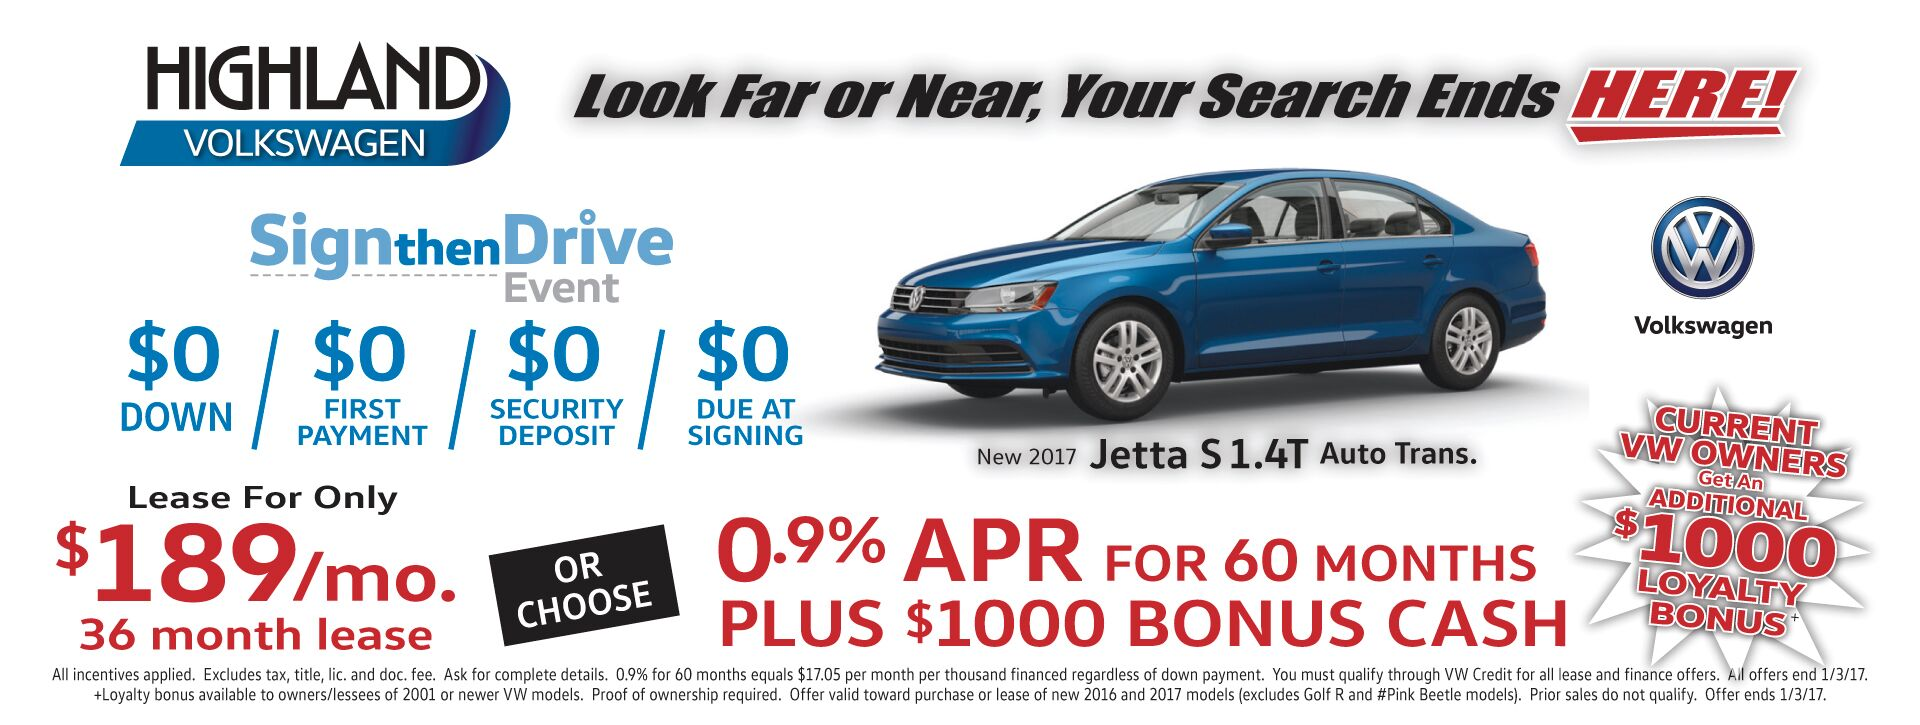 Jetta Sign Then Drive